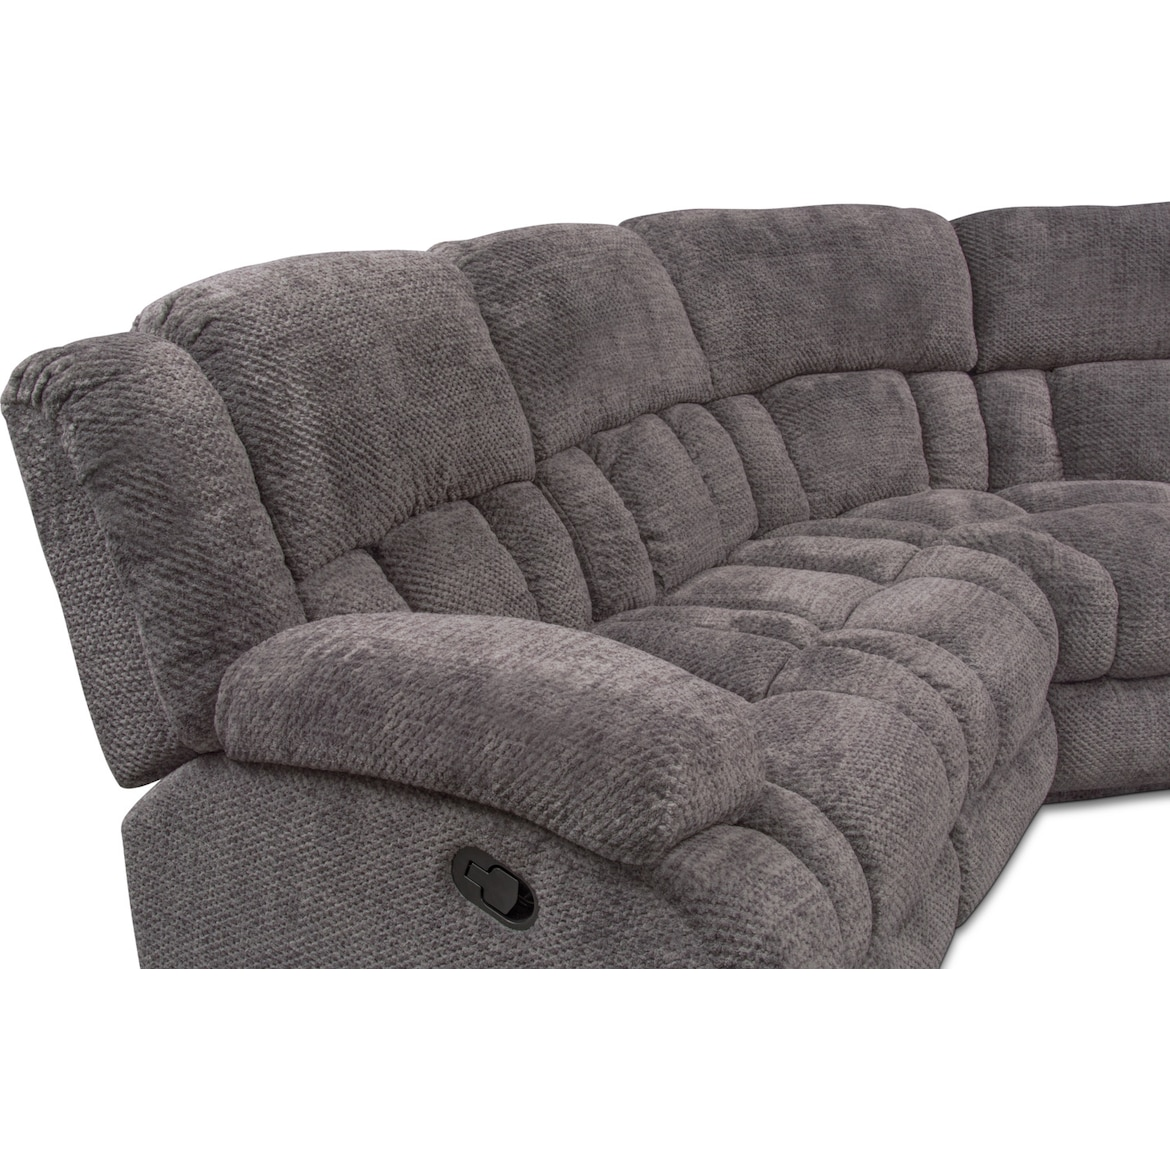 Turbo 5 Piece Manual Reclining Sectional With 3 Reclining